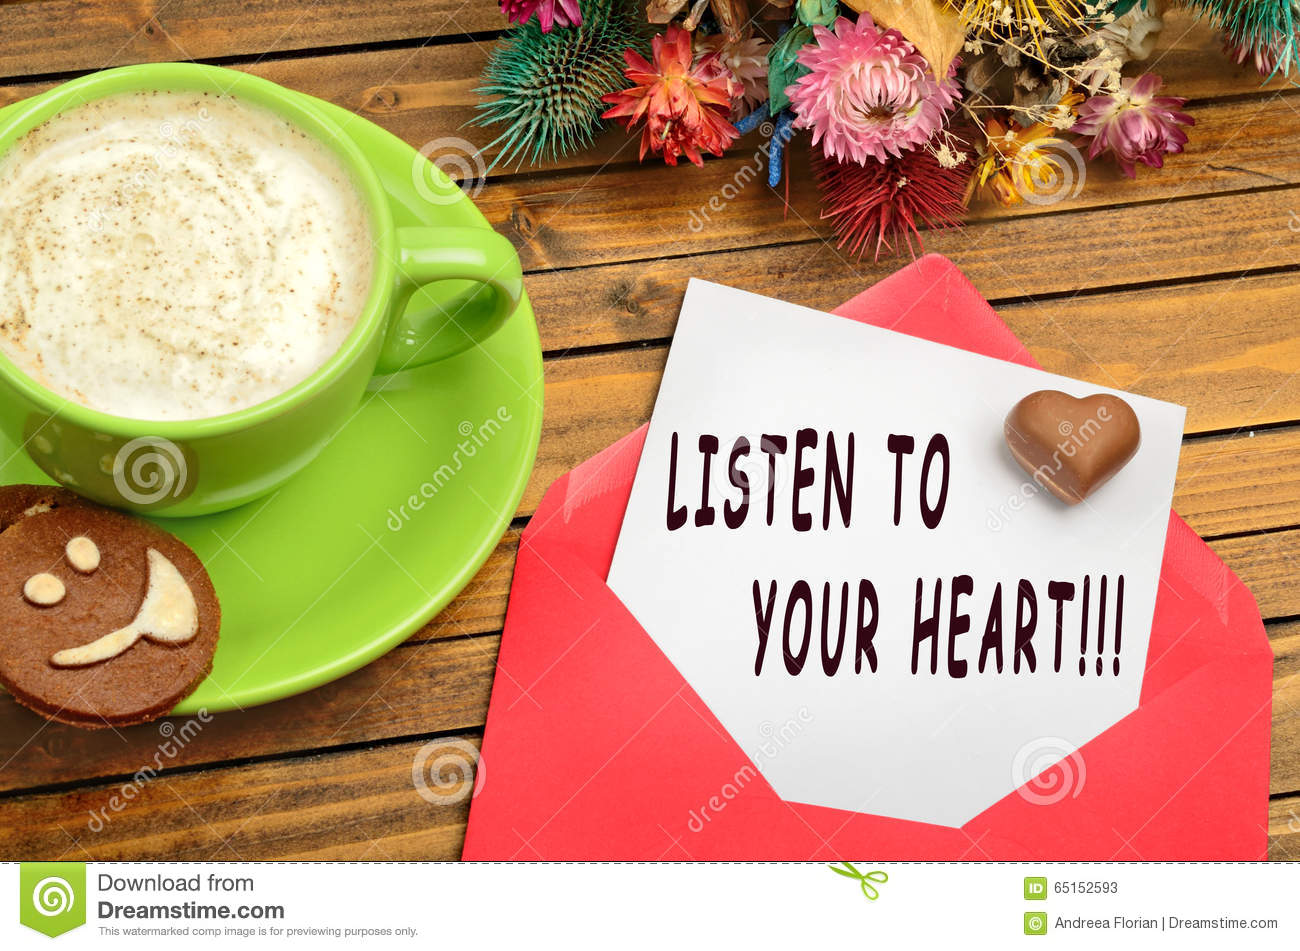 Listen To Your Heart Quotes Stock Image Image Of Colorful